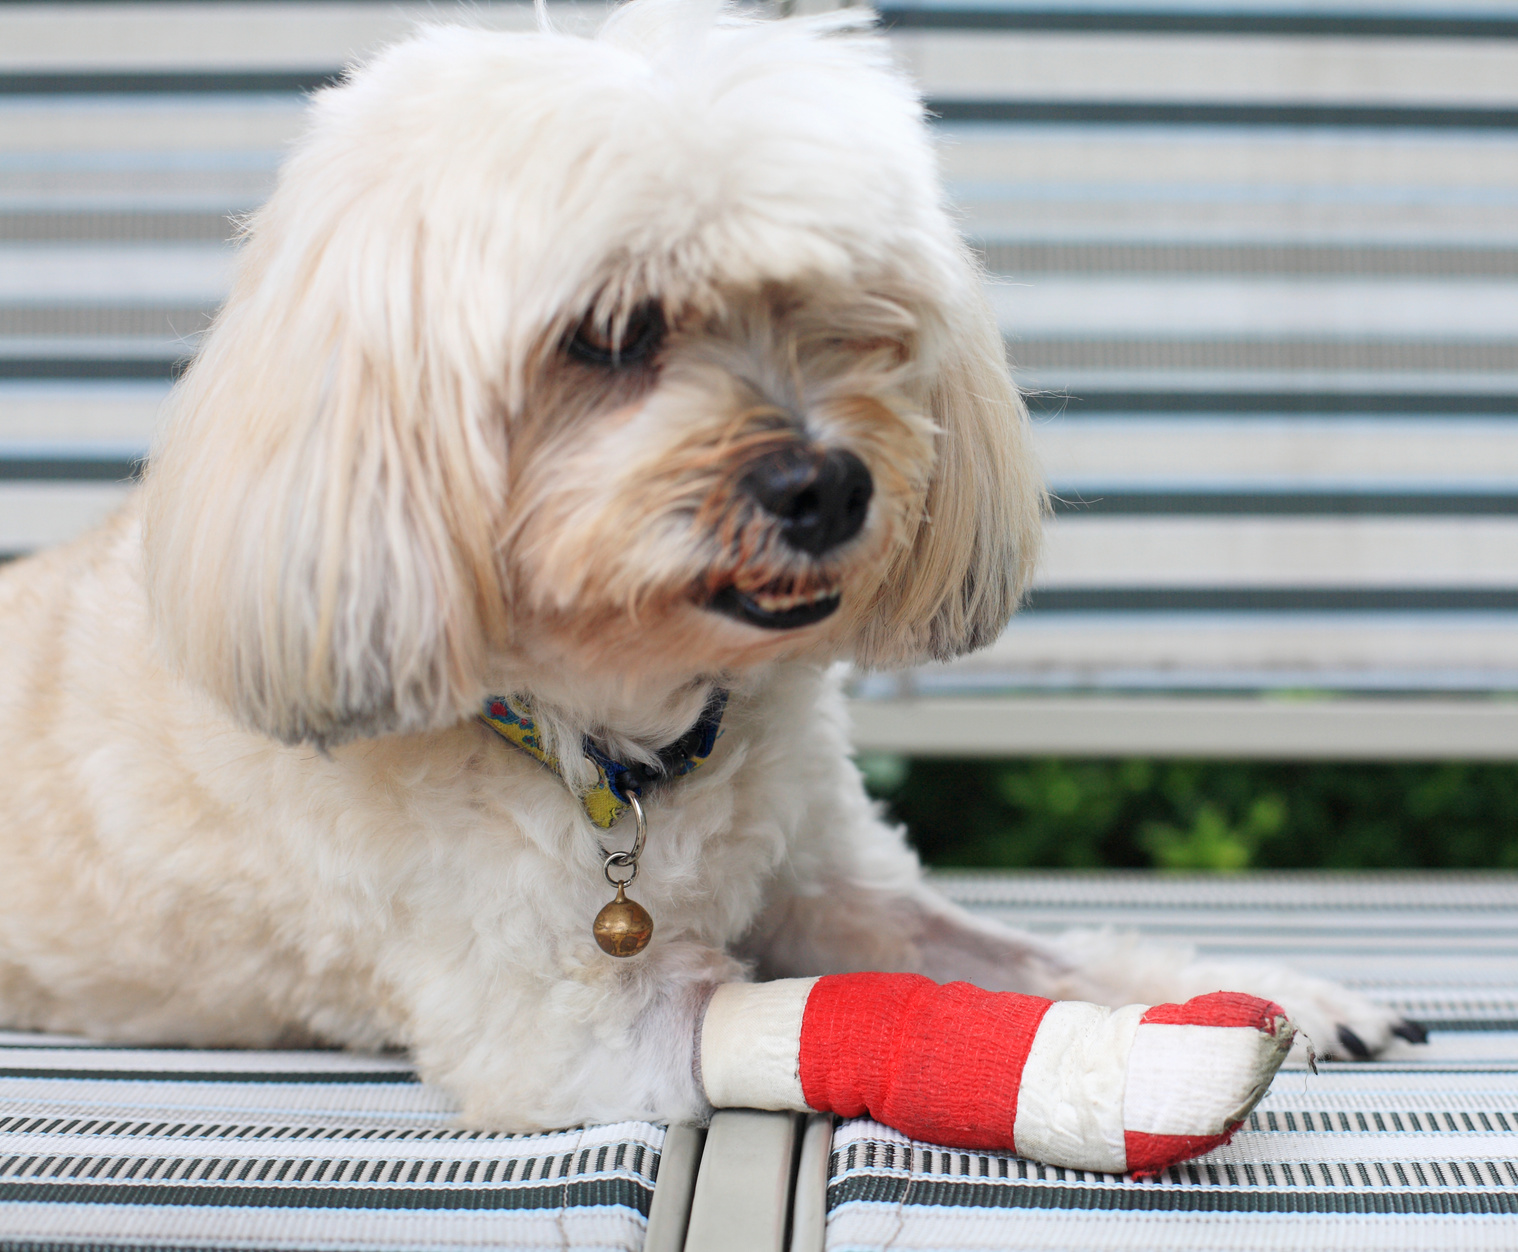 red bandage on front injured leg of Shih Tzu